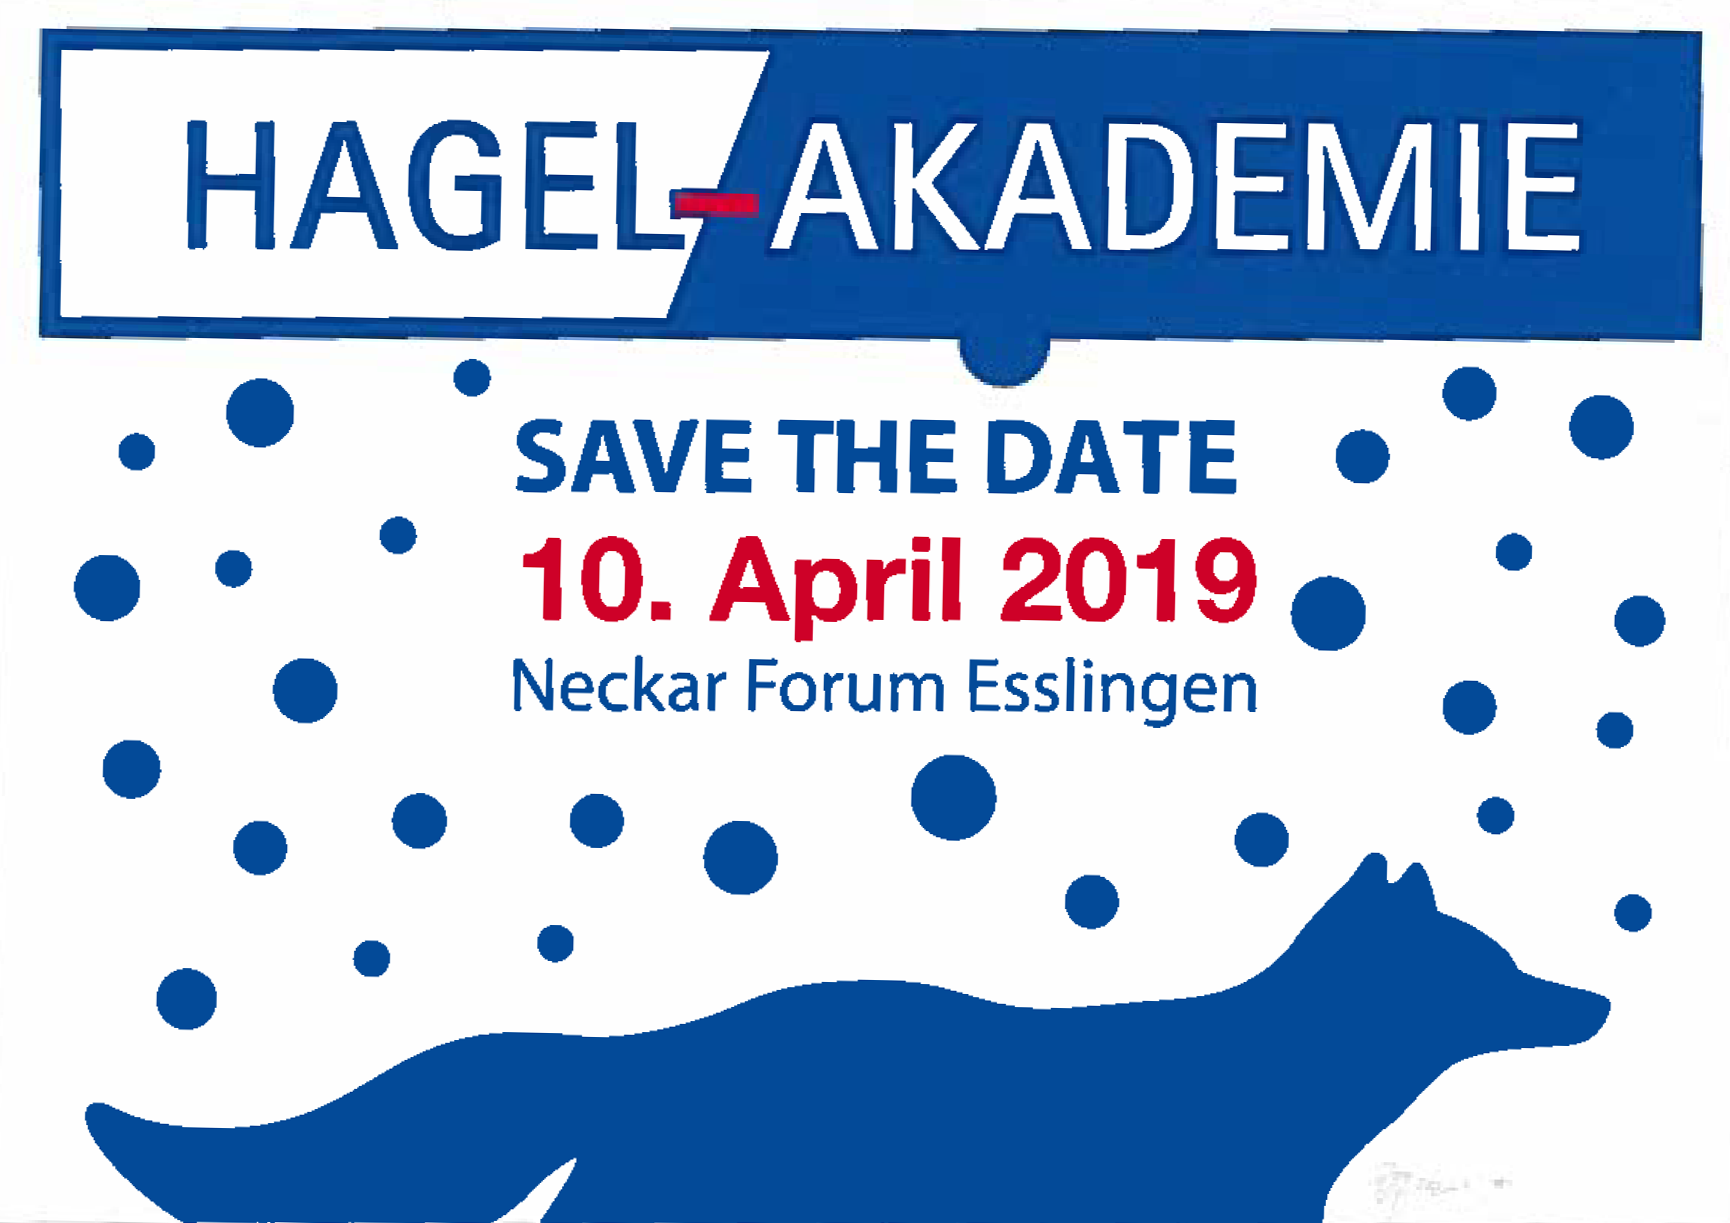 Hagelakademie 2019 am 10 April 2019